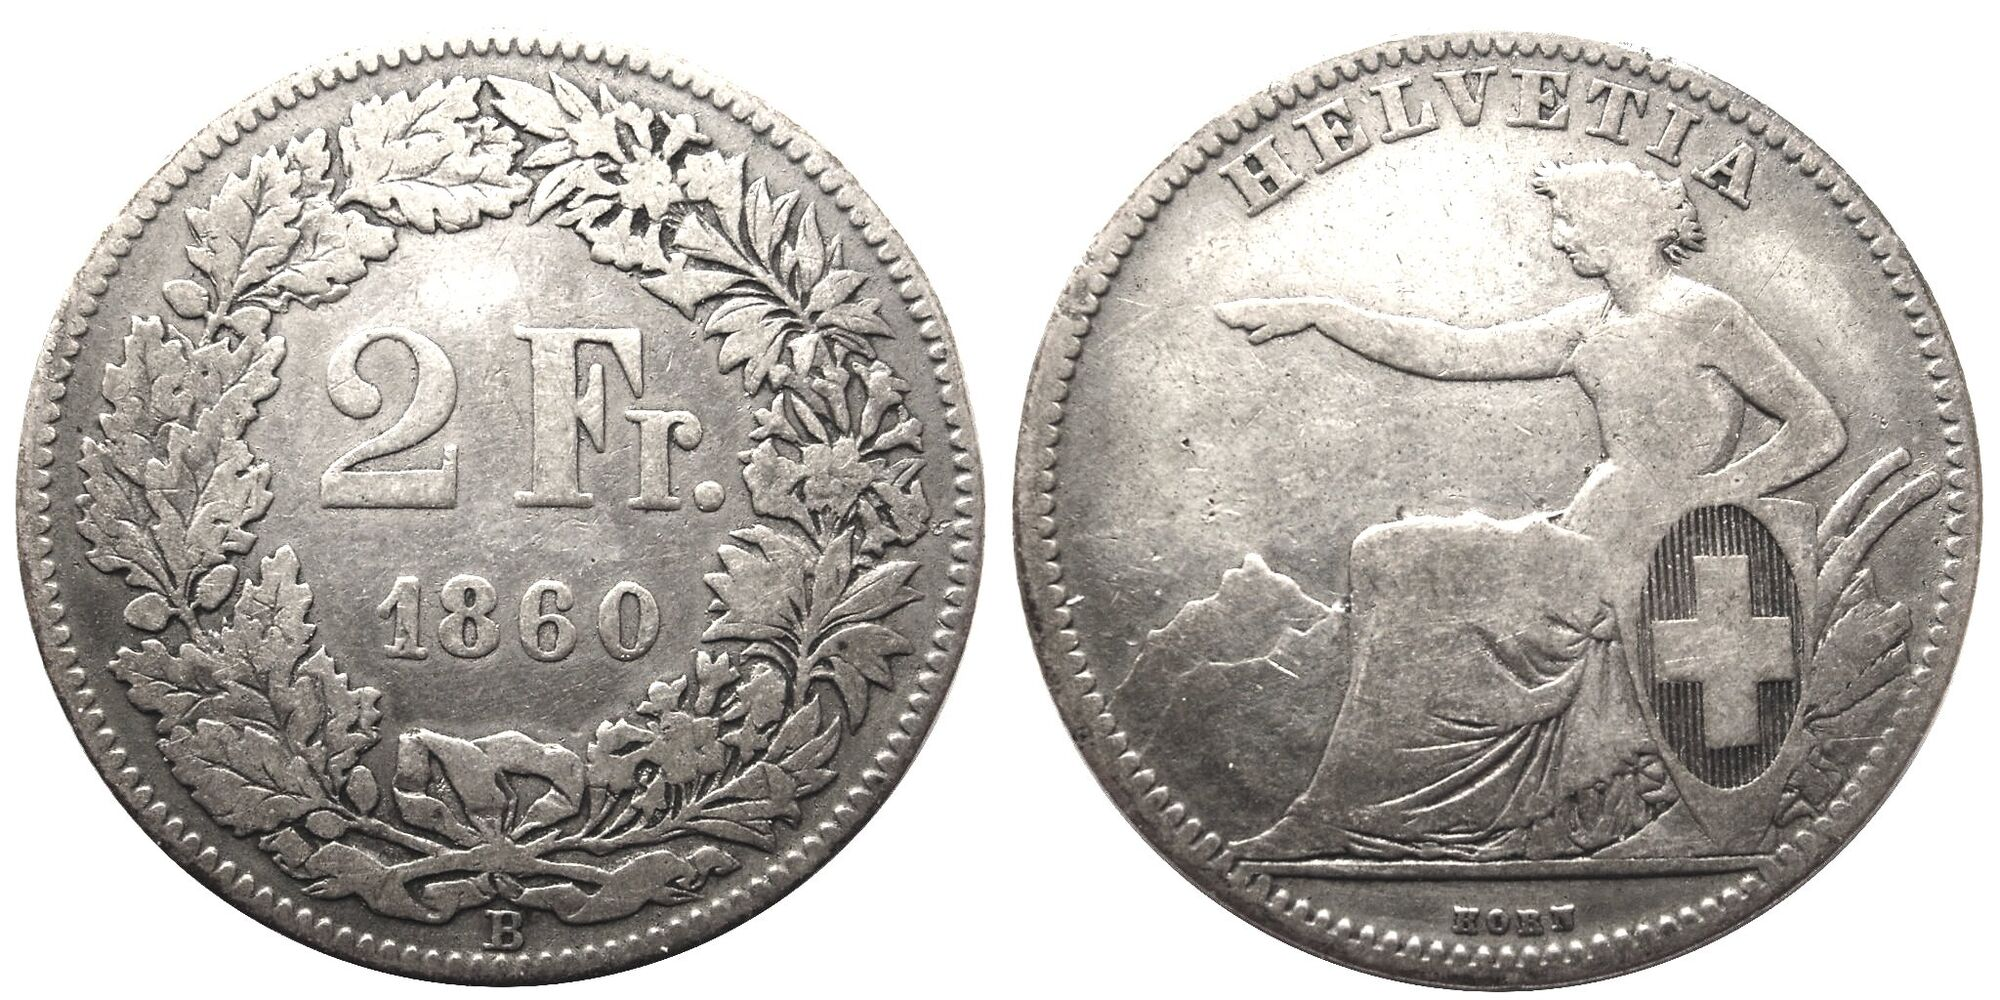 Swiss 2 Franc Coin Currency Wiki Fandom Powered By Wikia